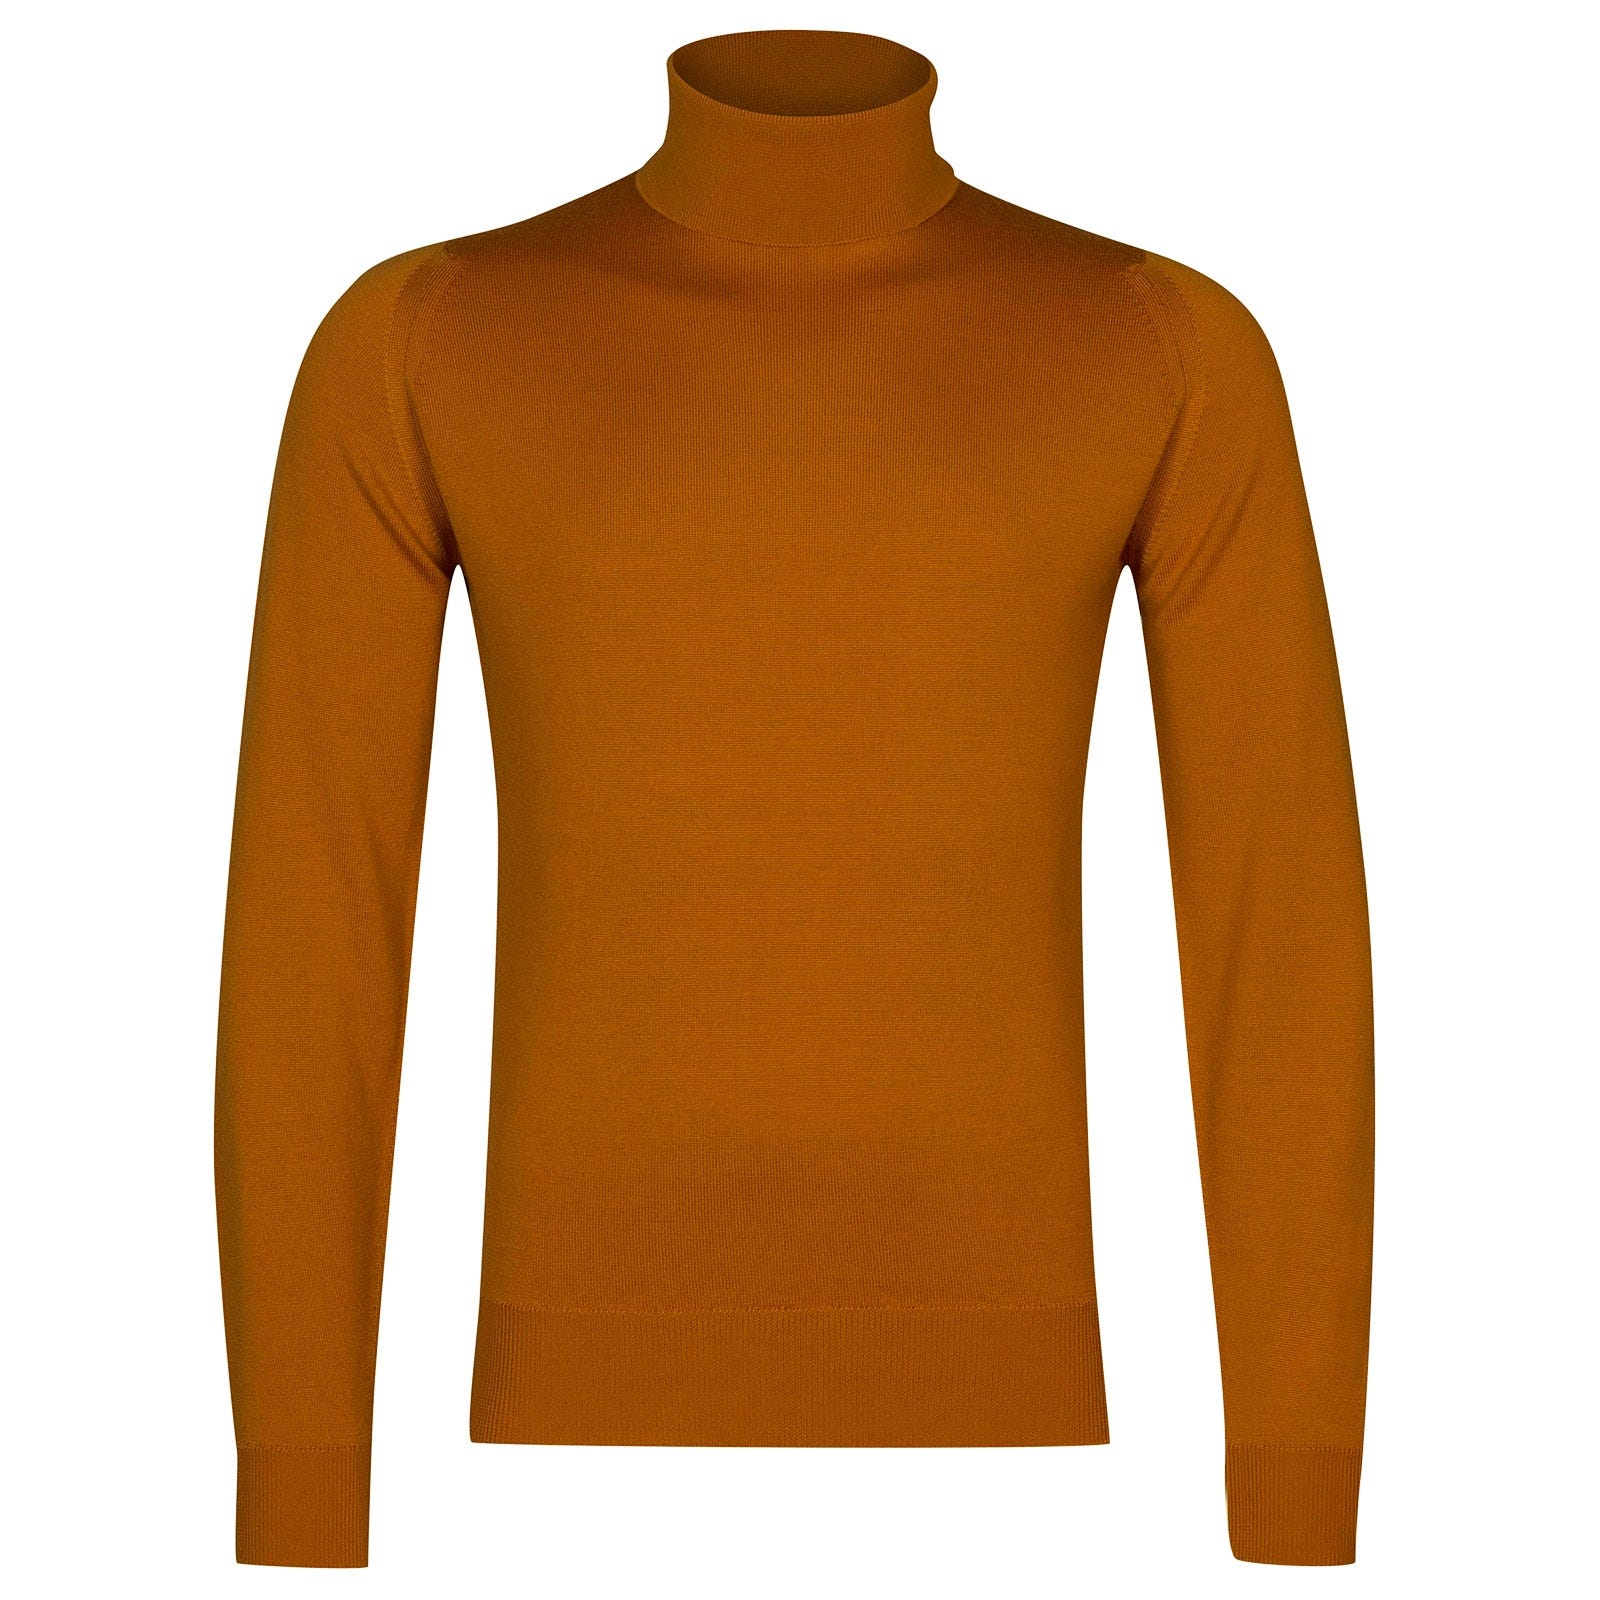 John Smedley Connell Merino Wool Pullover in Bronze-L